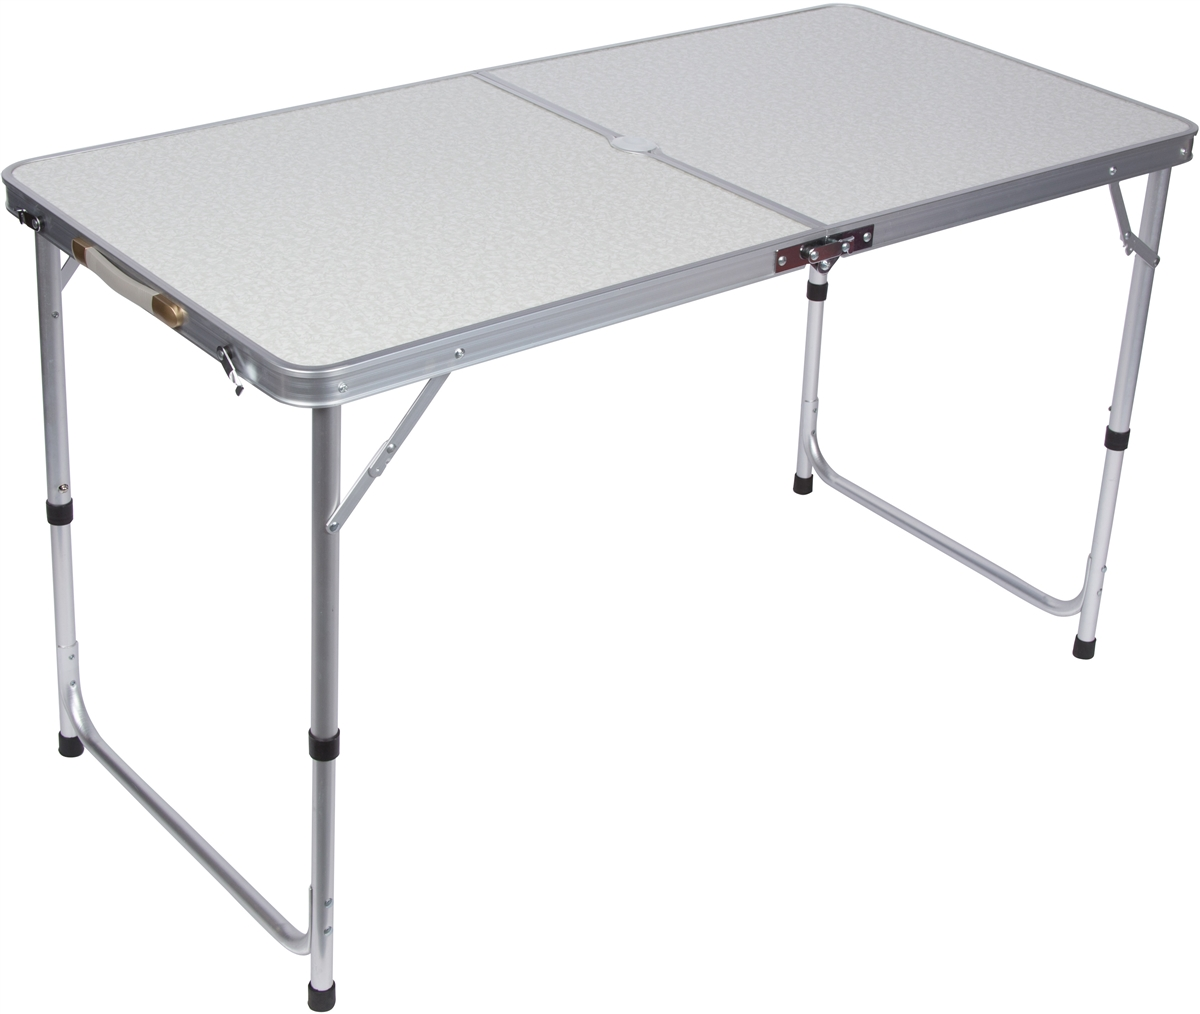 Astounding Lightweight Adjustable Portable Folding Aluminum Camp Table With Carry Handle By Trademark Innovations Gmtry Best Dining Table And Chair Ideas Images Gmtryco